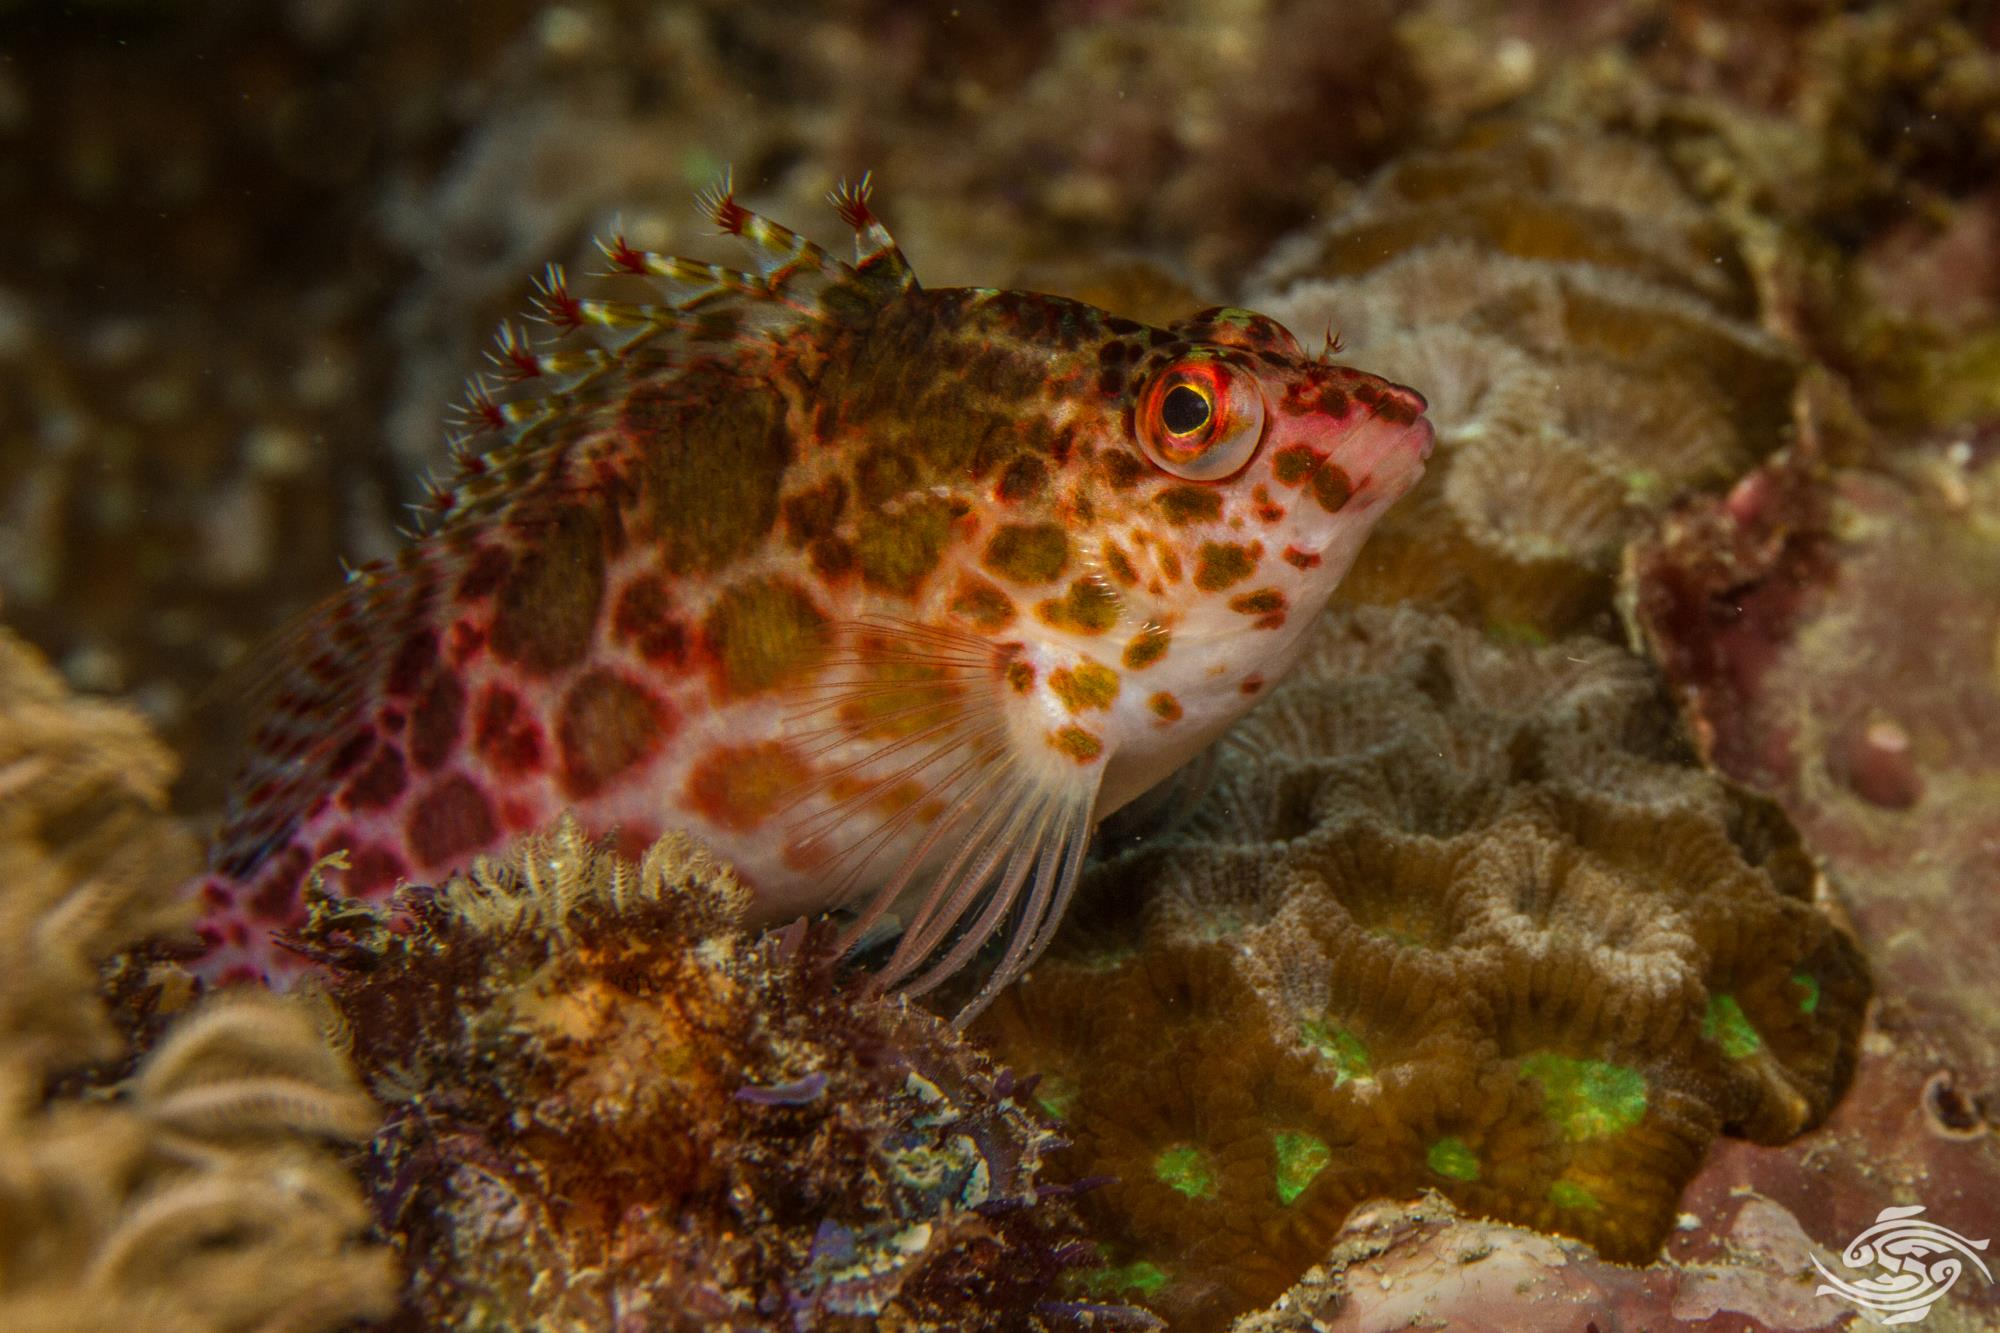 Spotted Hawkfish Cirrhitichthys oxycephalus, is also known as the Pixy Hawkfish